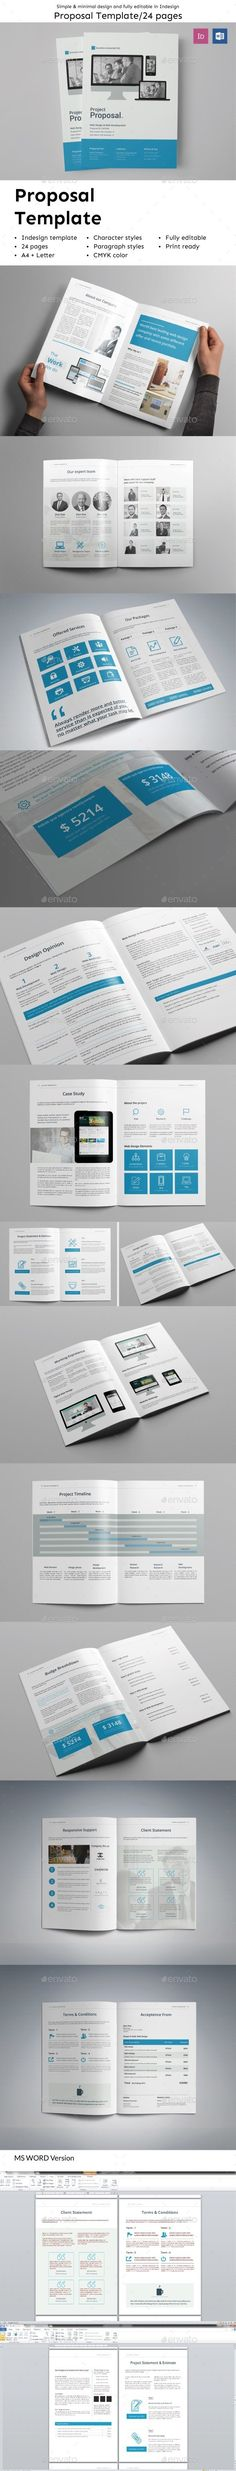 Web Proposal  Invoice Template Indesign Indd Download Here Http